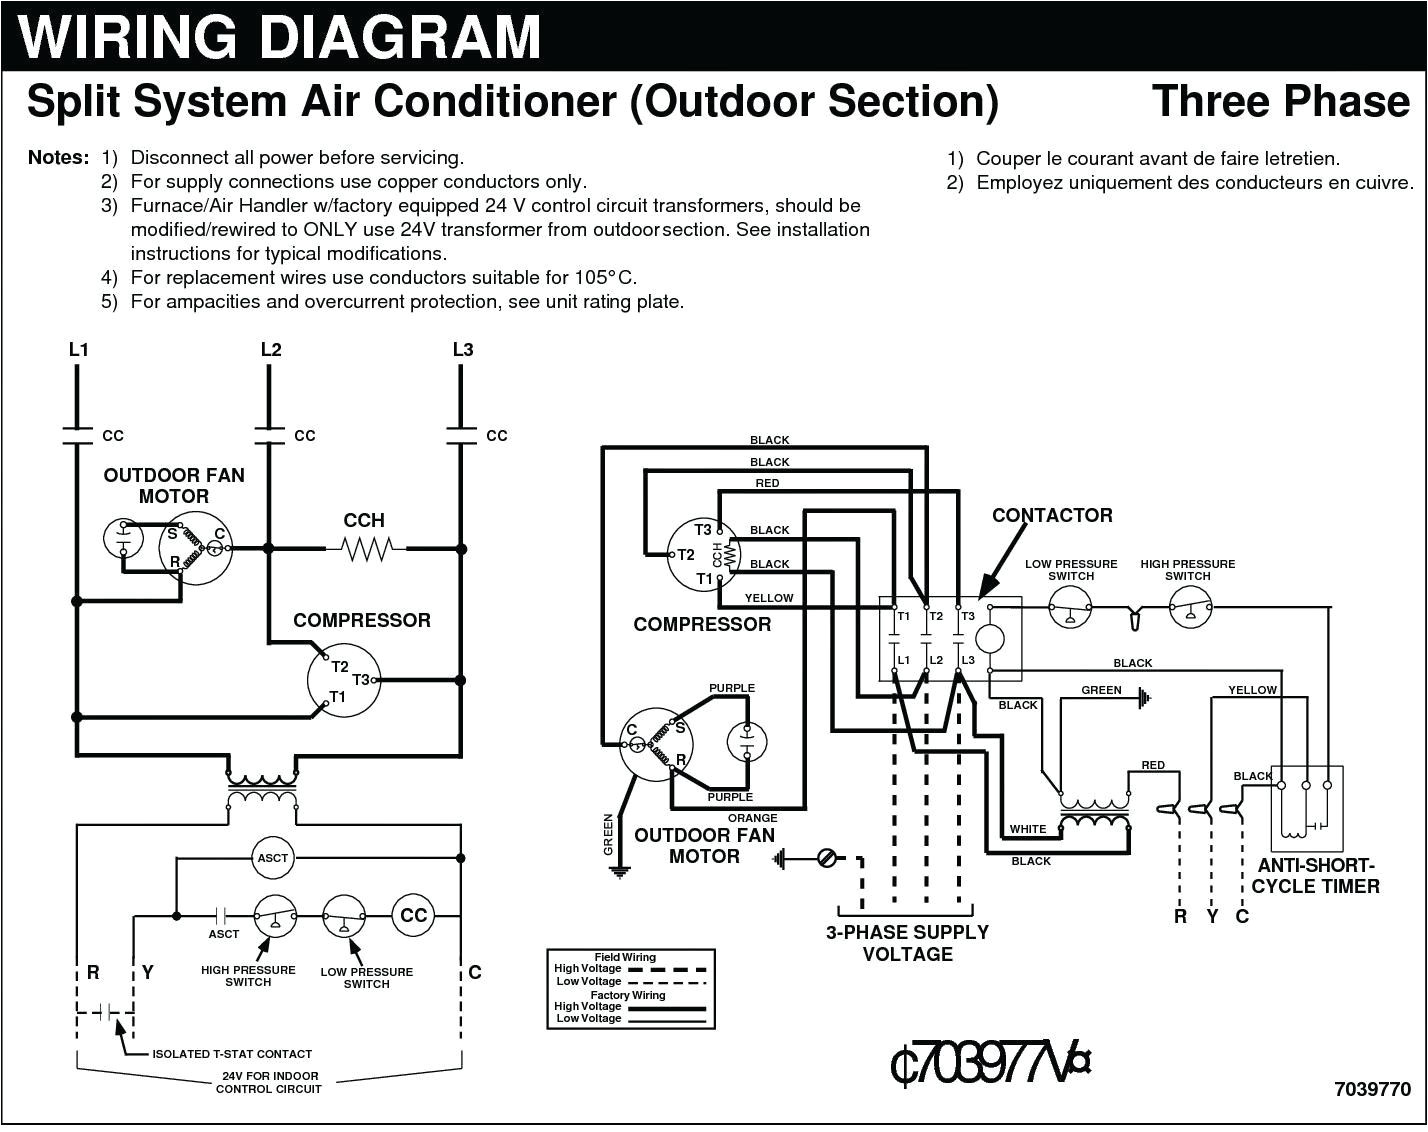 Arcoaire Wiring Diagram | Index listing of wiring diagrams on smoke detectors schematic, furnace fan schematic, furnace diagrams, furnace exhaust schematic, furnace motor schematic,